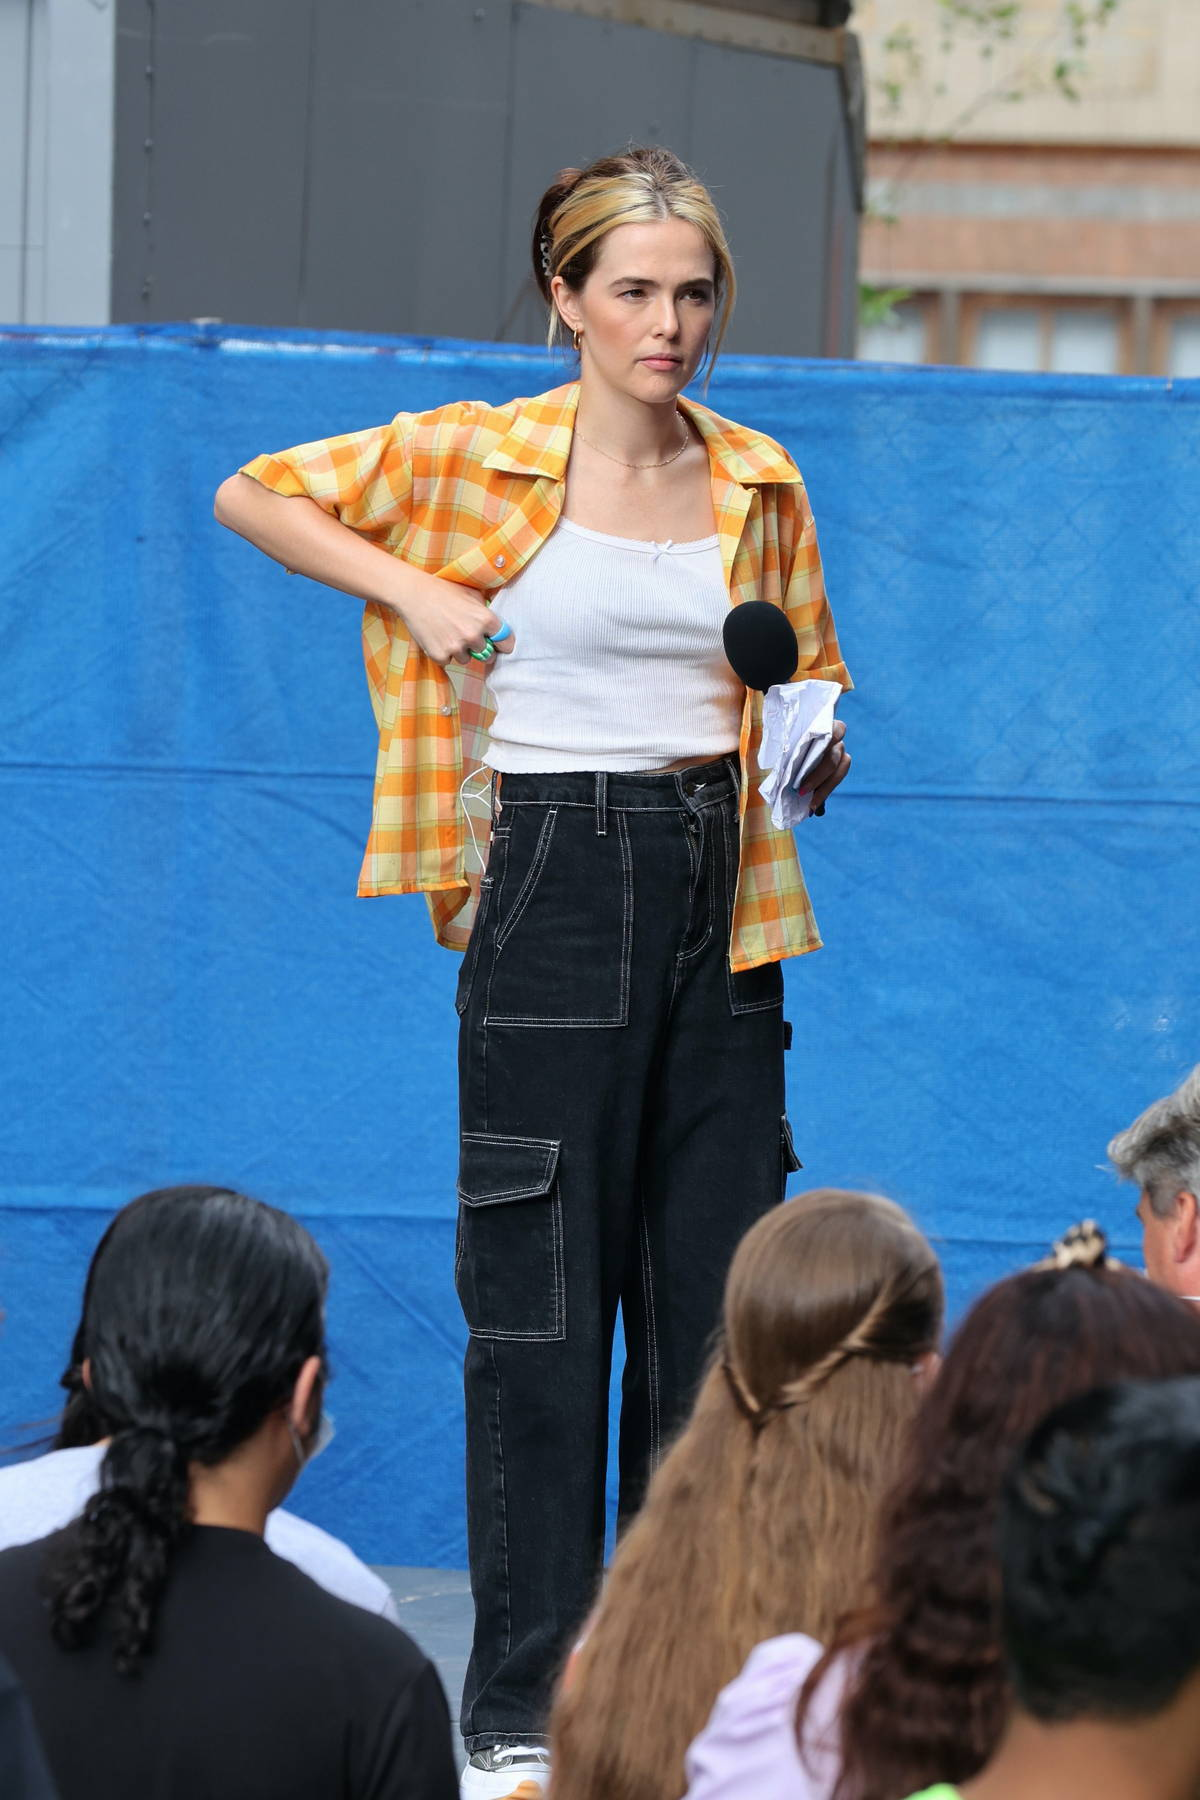 Zoey Deutch spotted on set of 'Not Okay' as she films a Protest scene in New York City